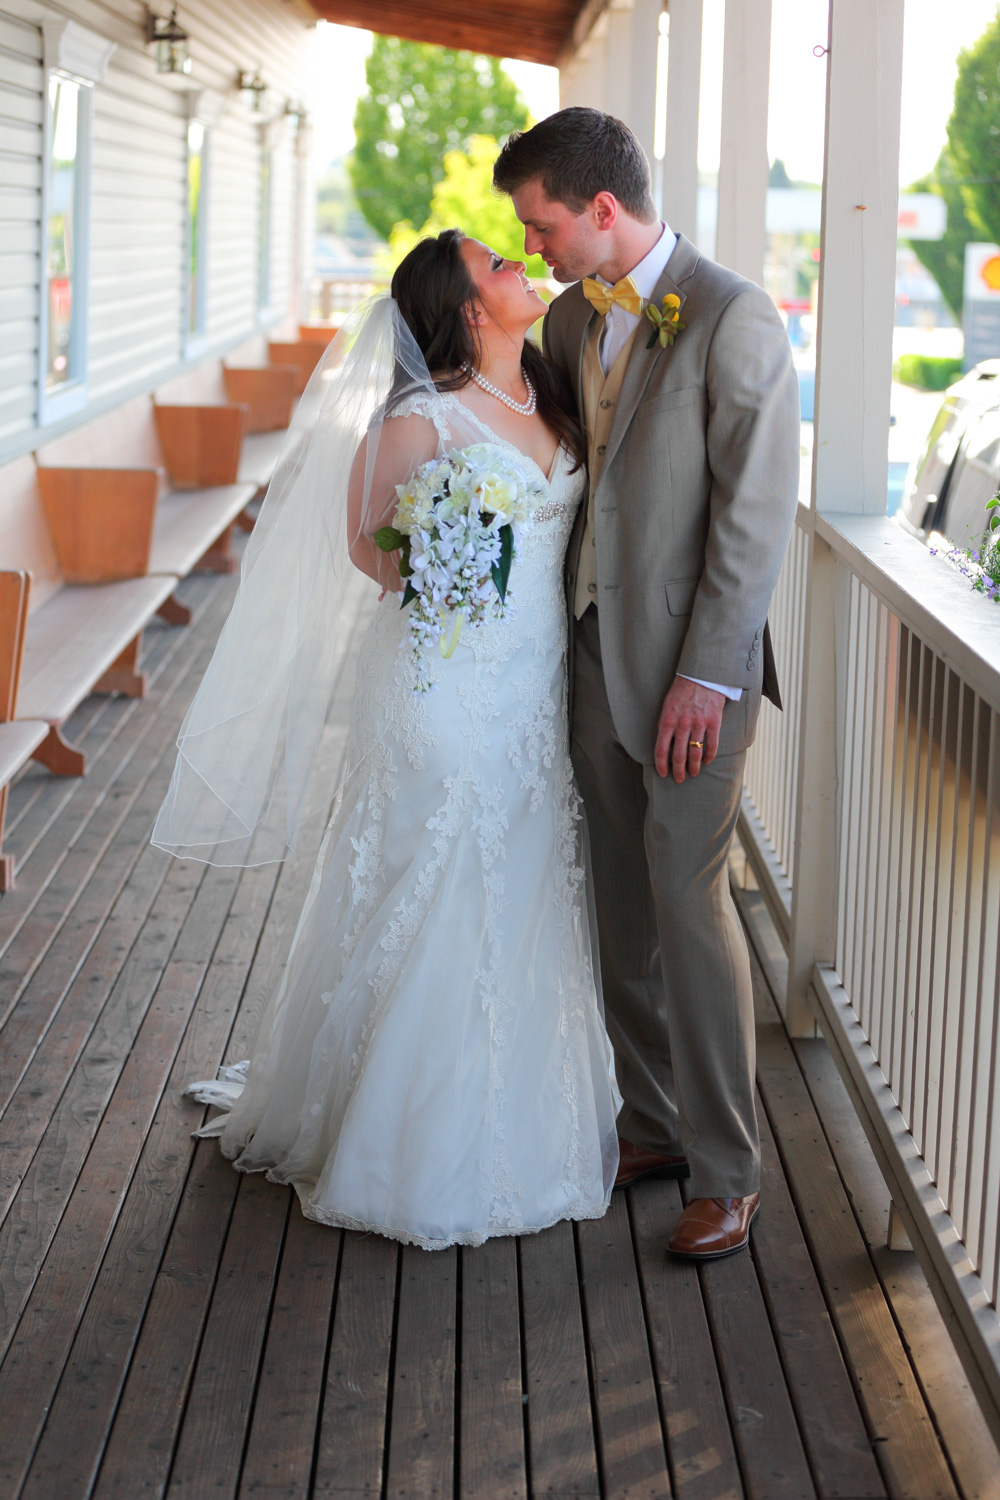 Wedding+Photos+Snohomish+Event+Center+17.jpg